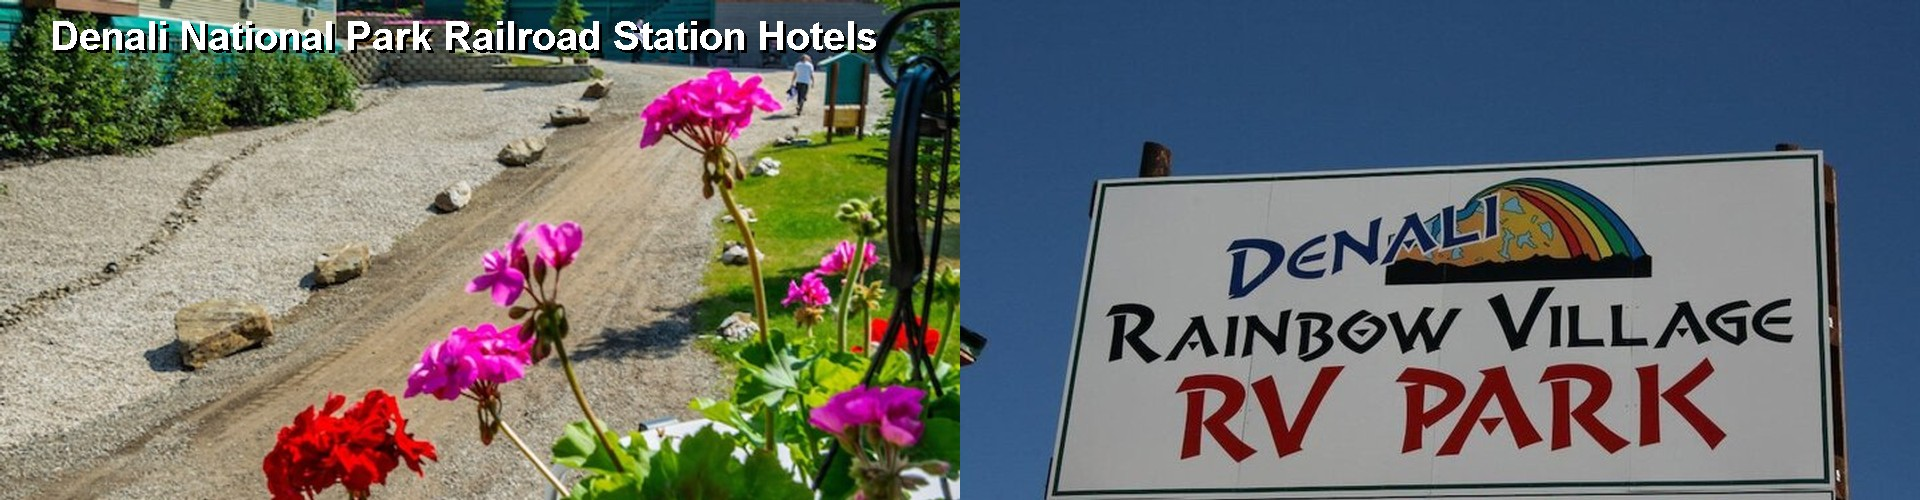 0 Best Hotels near Denali National Park Railroad Station